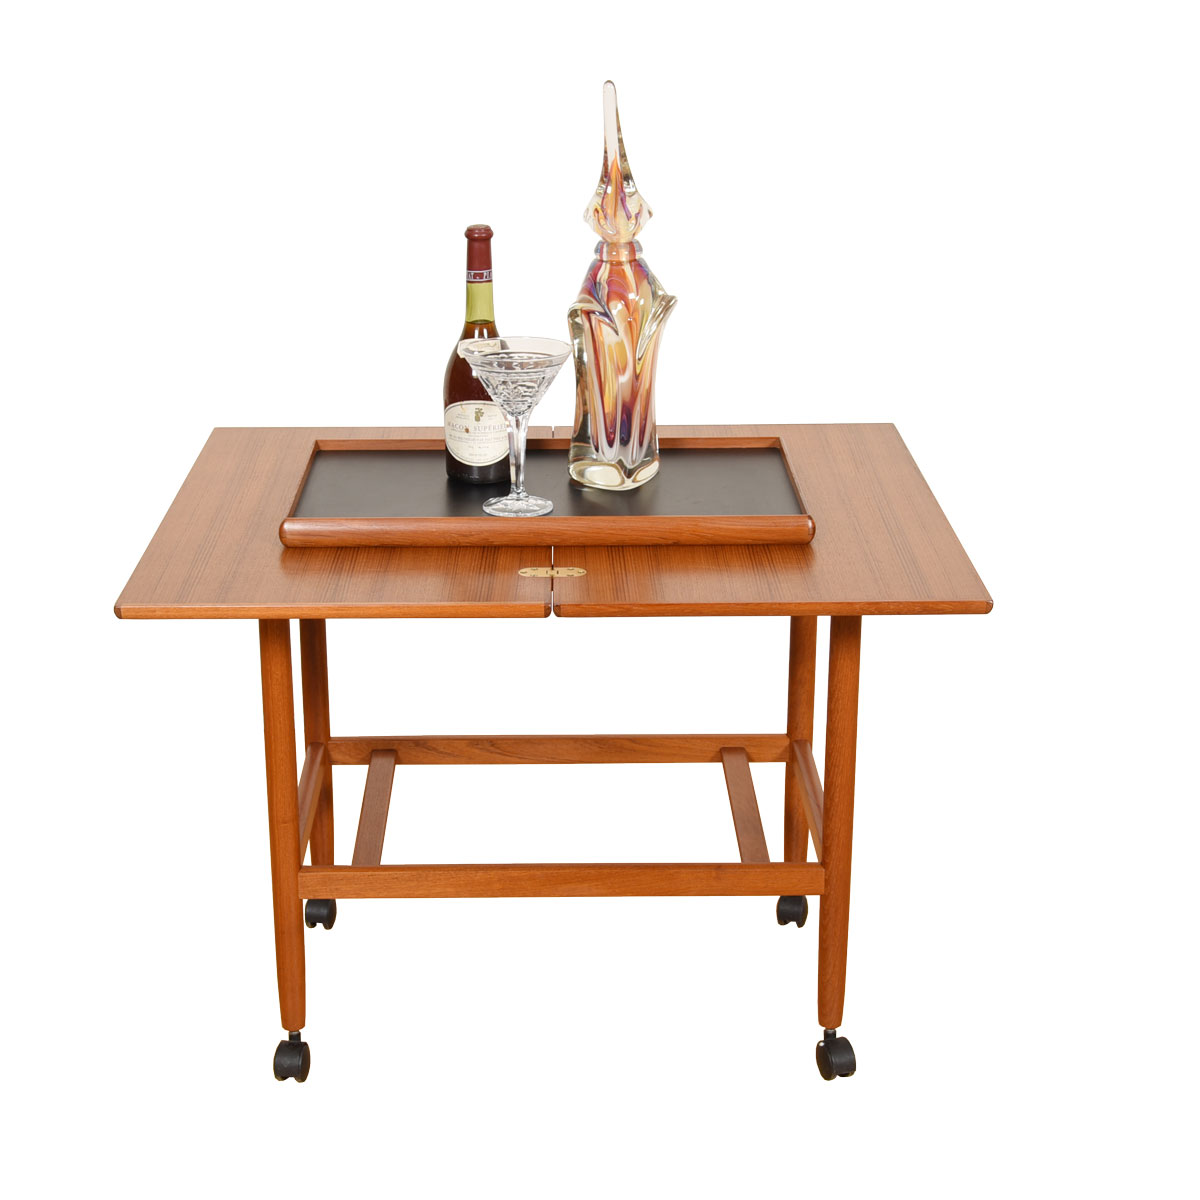 Expanding Danish Teak Cocktail Cart with Reversible Serving Tray